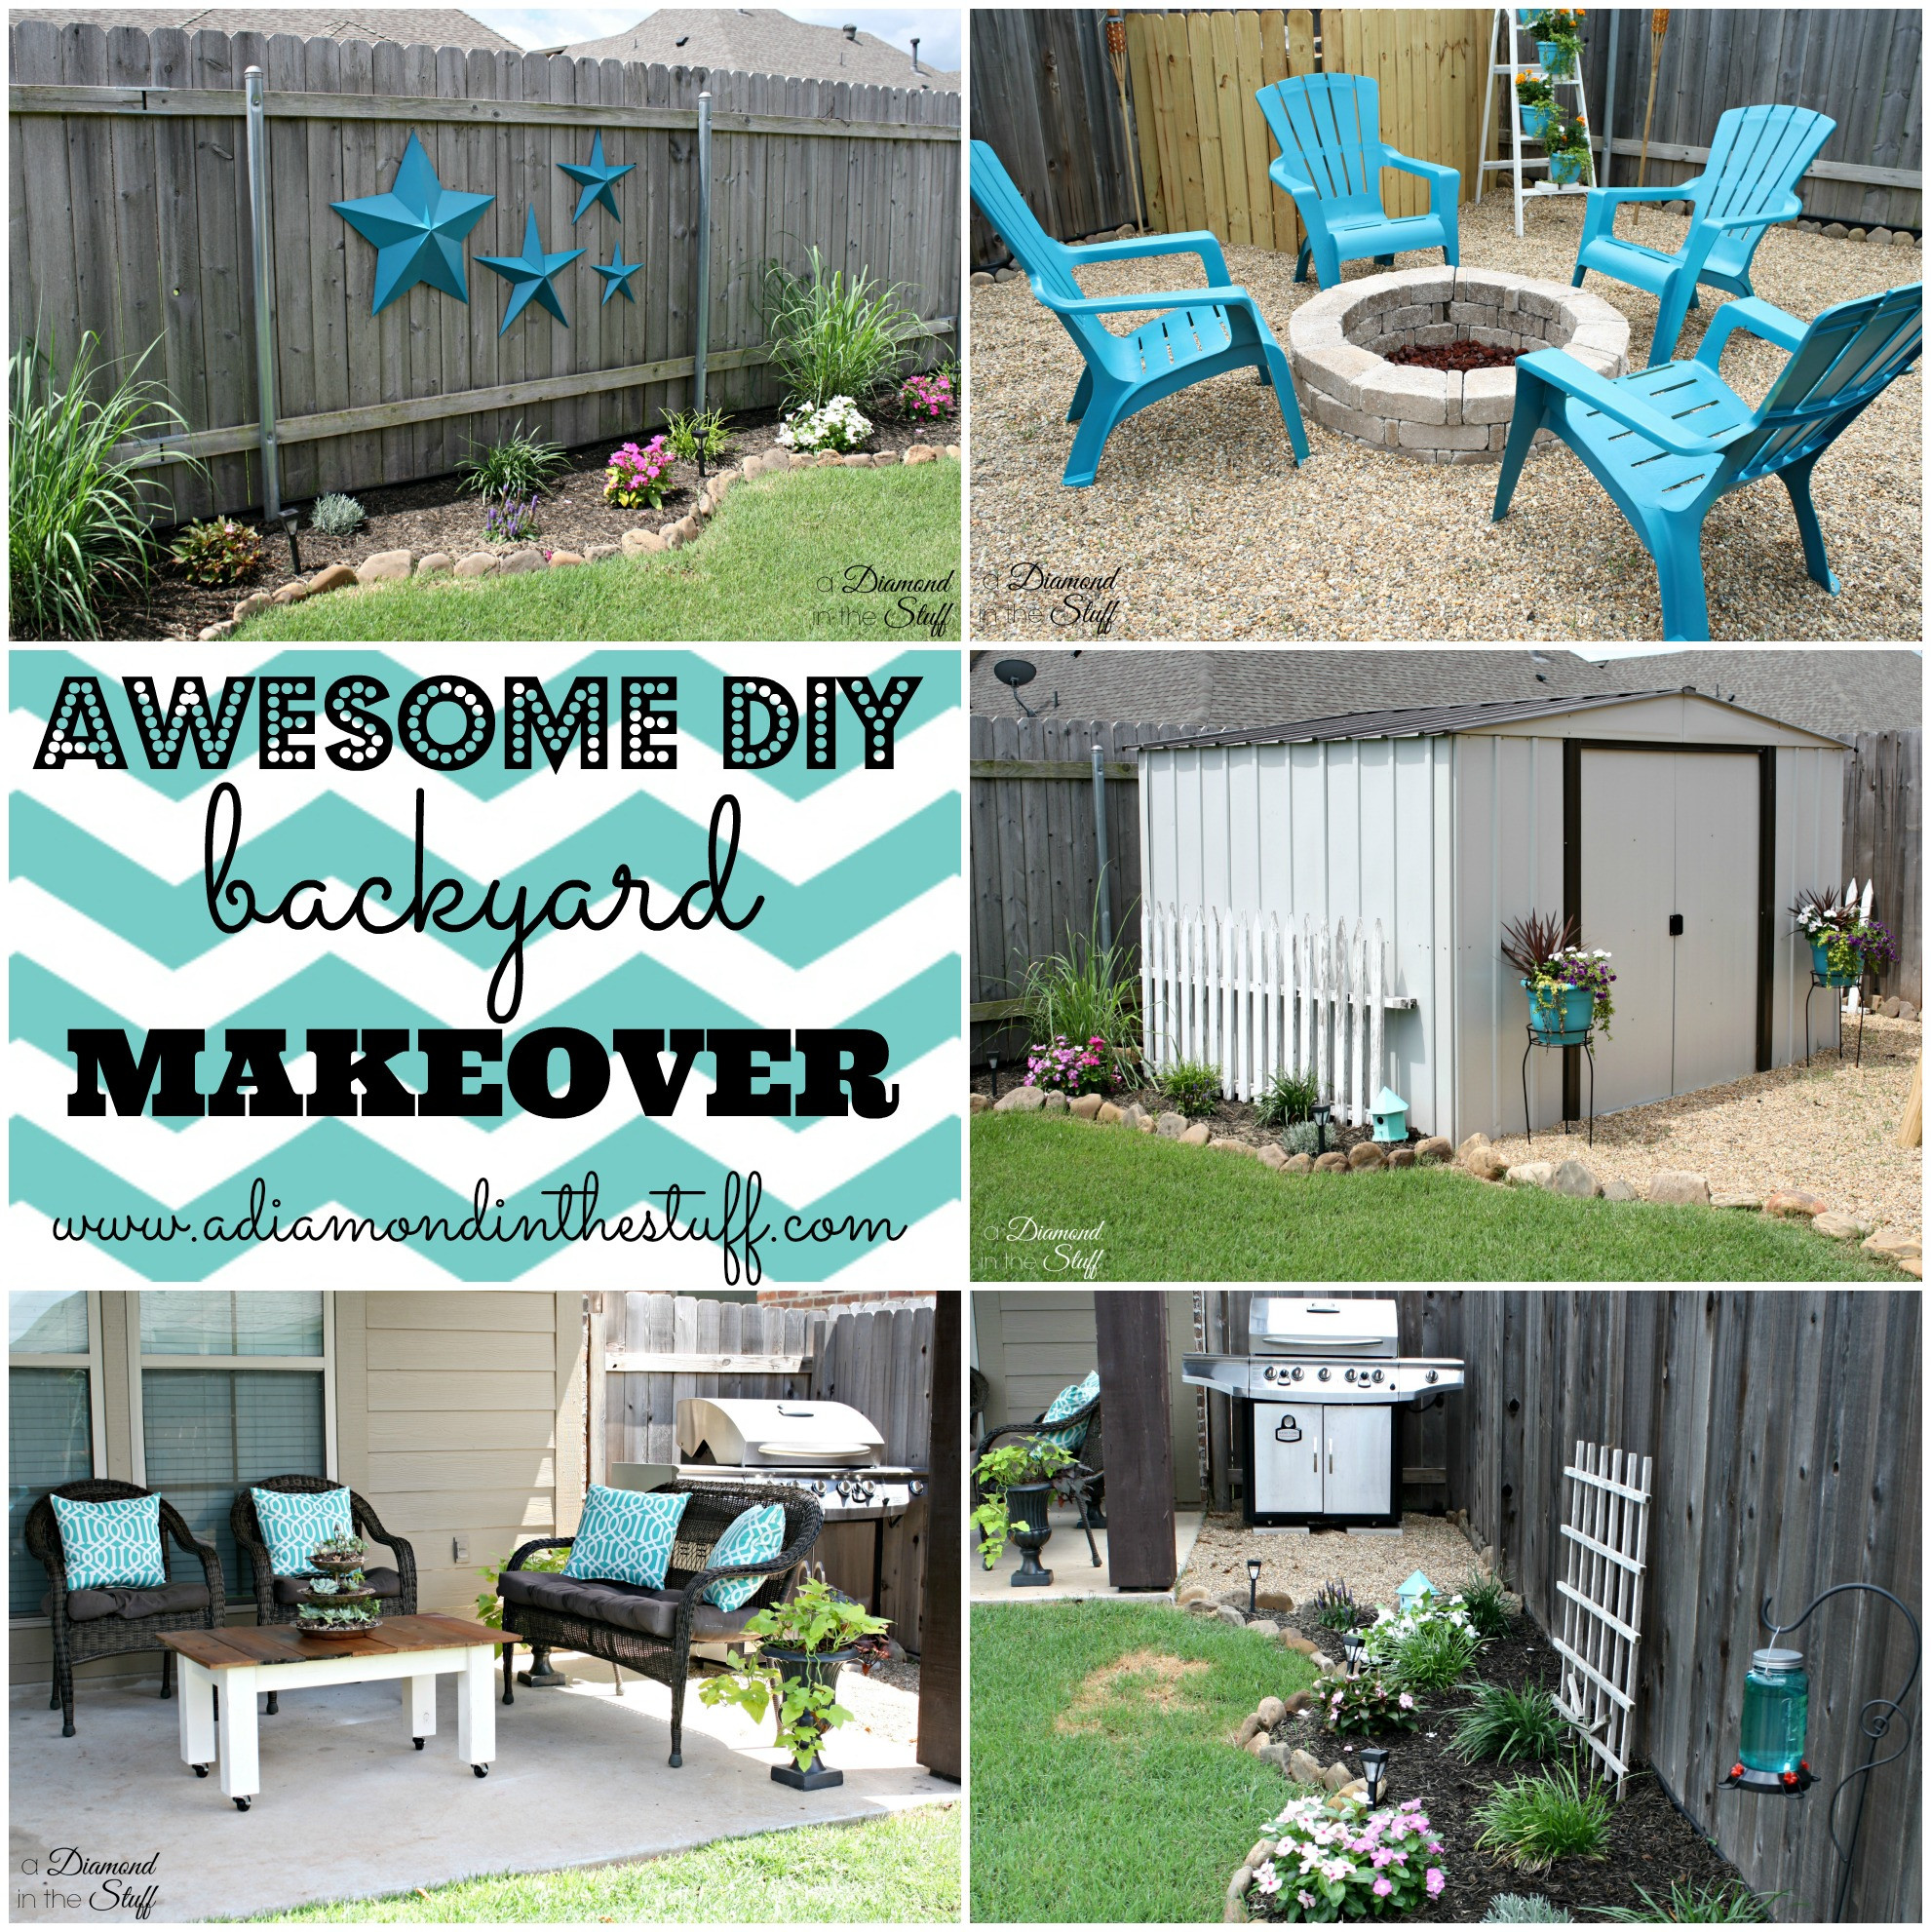 Best ideas about DIY Backyard Makeovers . Save or Pin Awesome DIY Backyard Makeover Now.